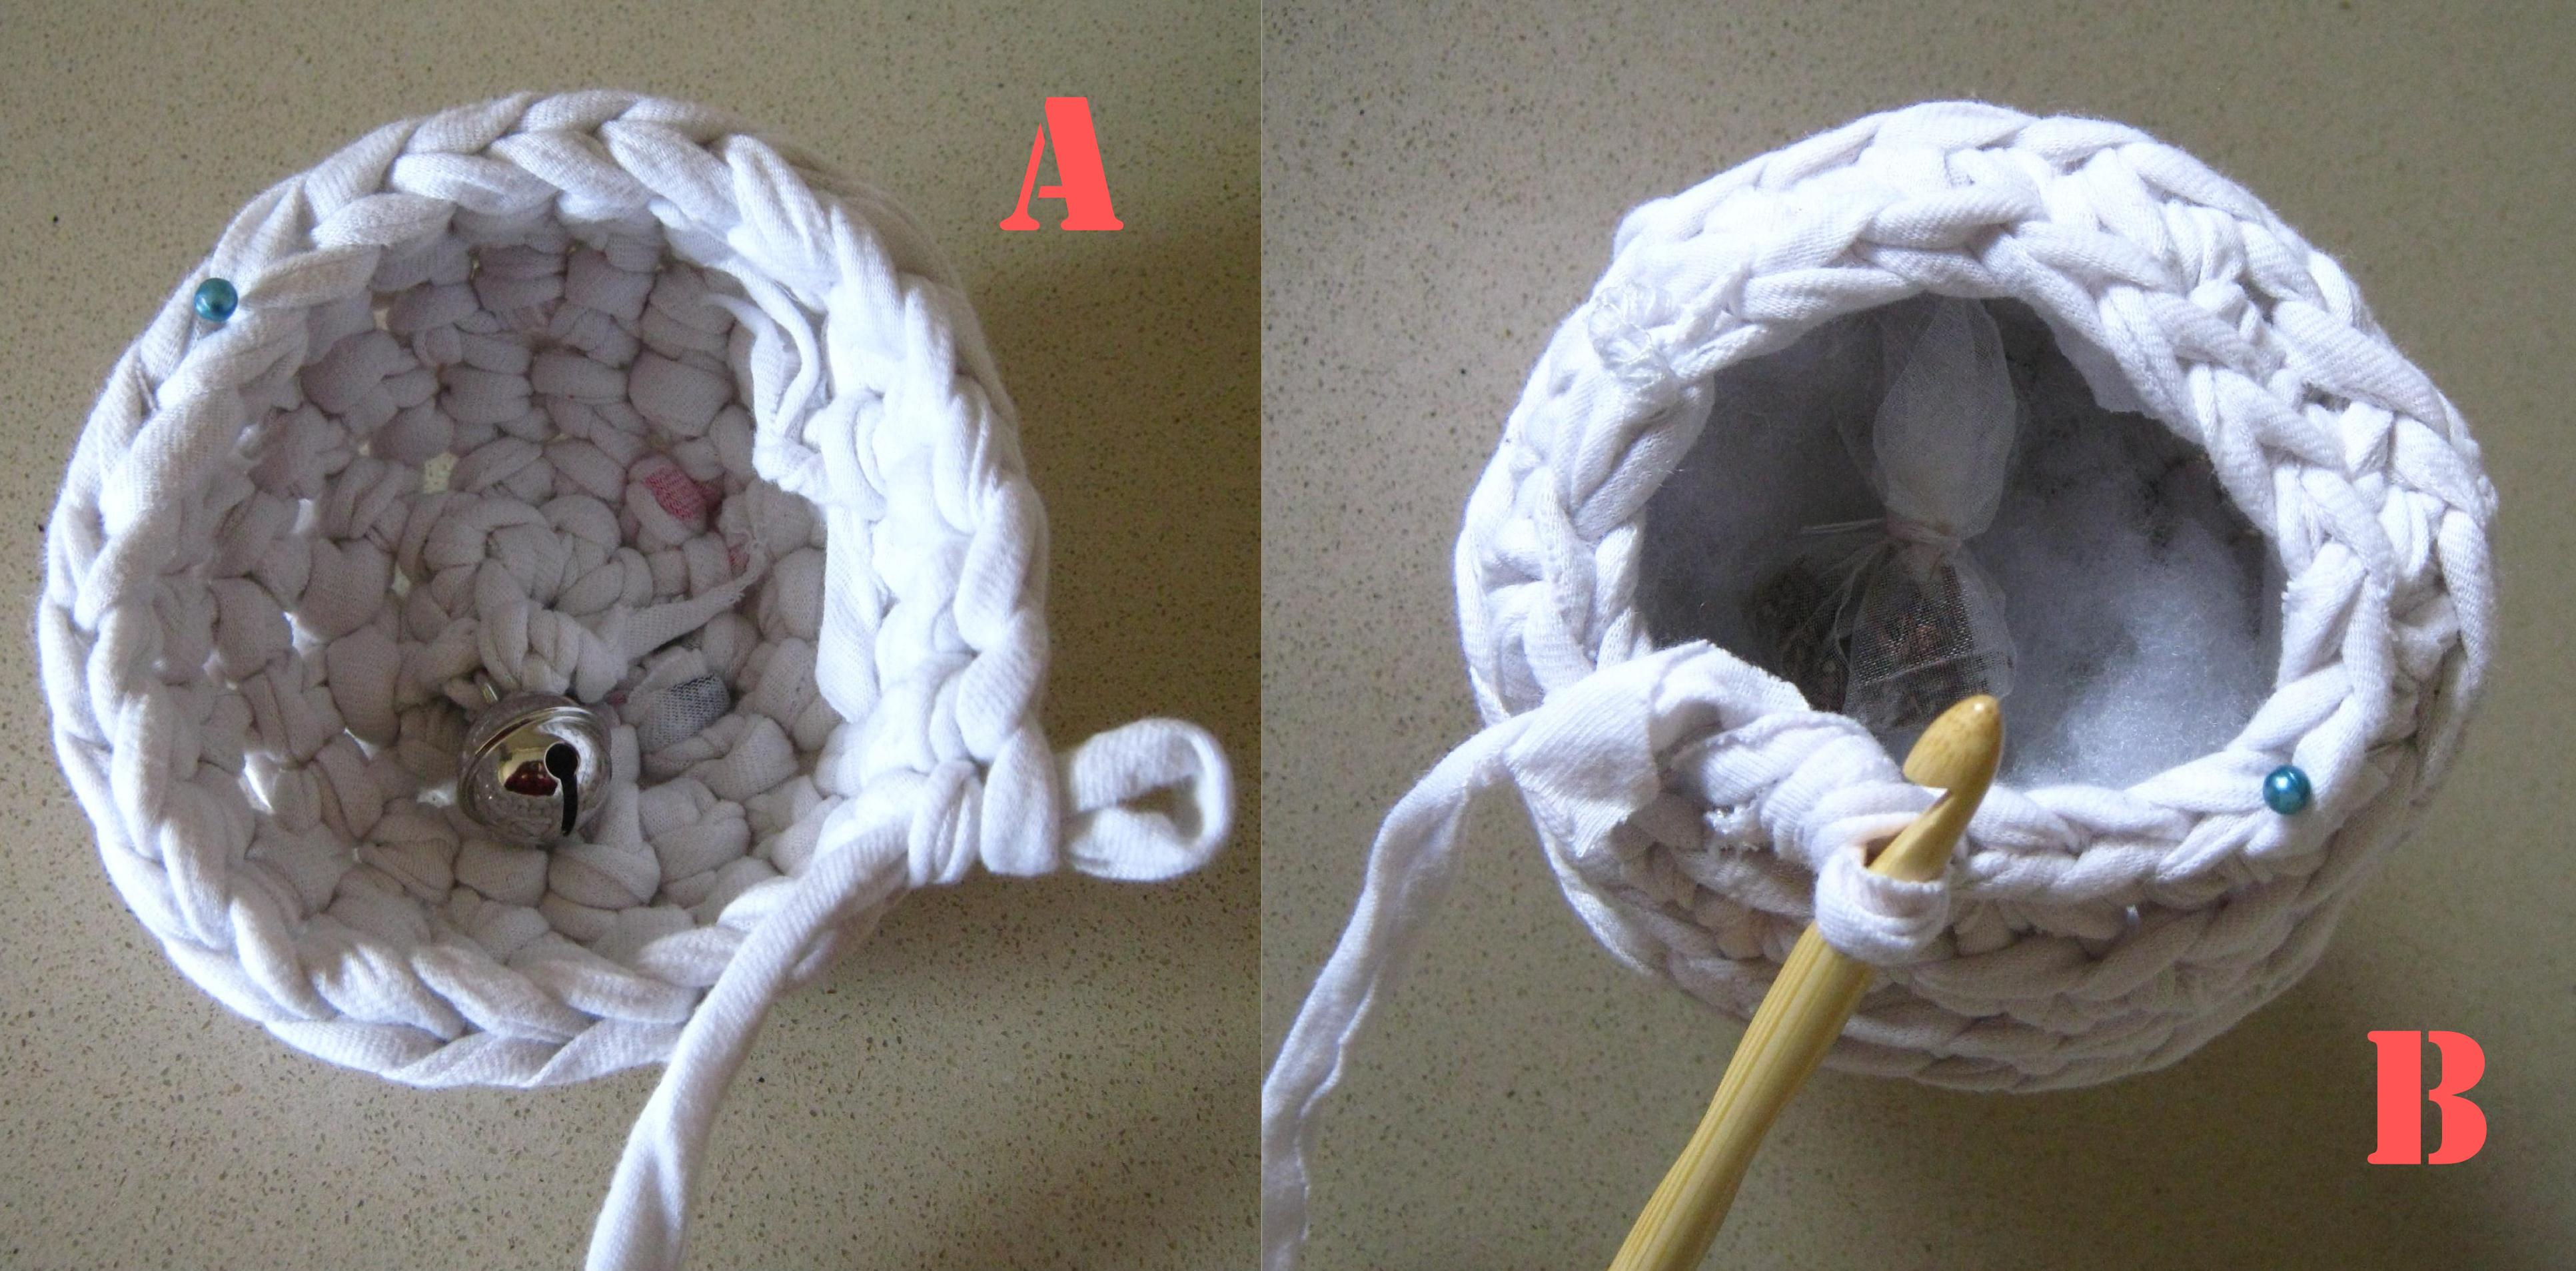 Crochet Sphere Pattern Free Free Pattern Cats Favorite Toy Crocheted Balls From A T Shirt